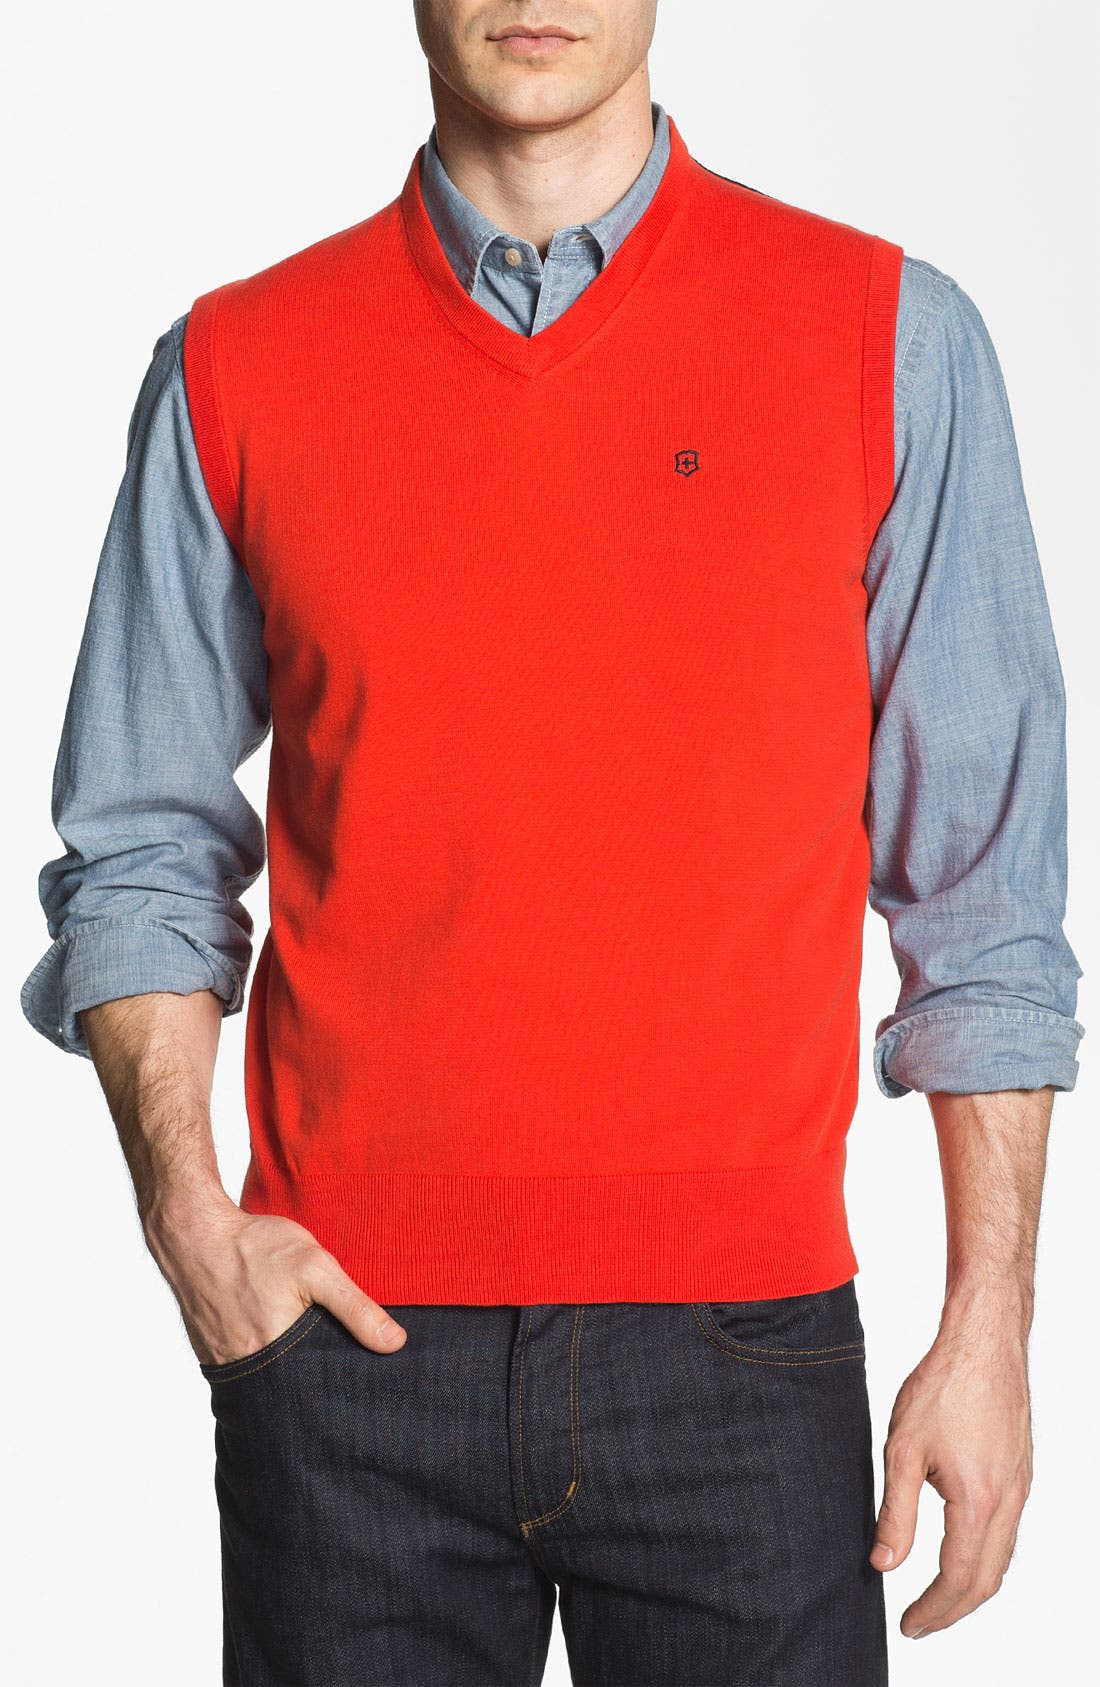 Alternate Image 1 Selected - Victorinox Swiss Army® 'Suisse' Tailored Fit Sweater Vest (Online Only)